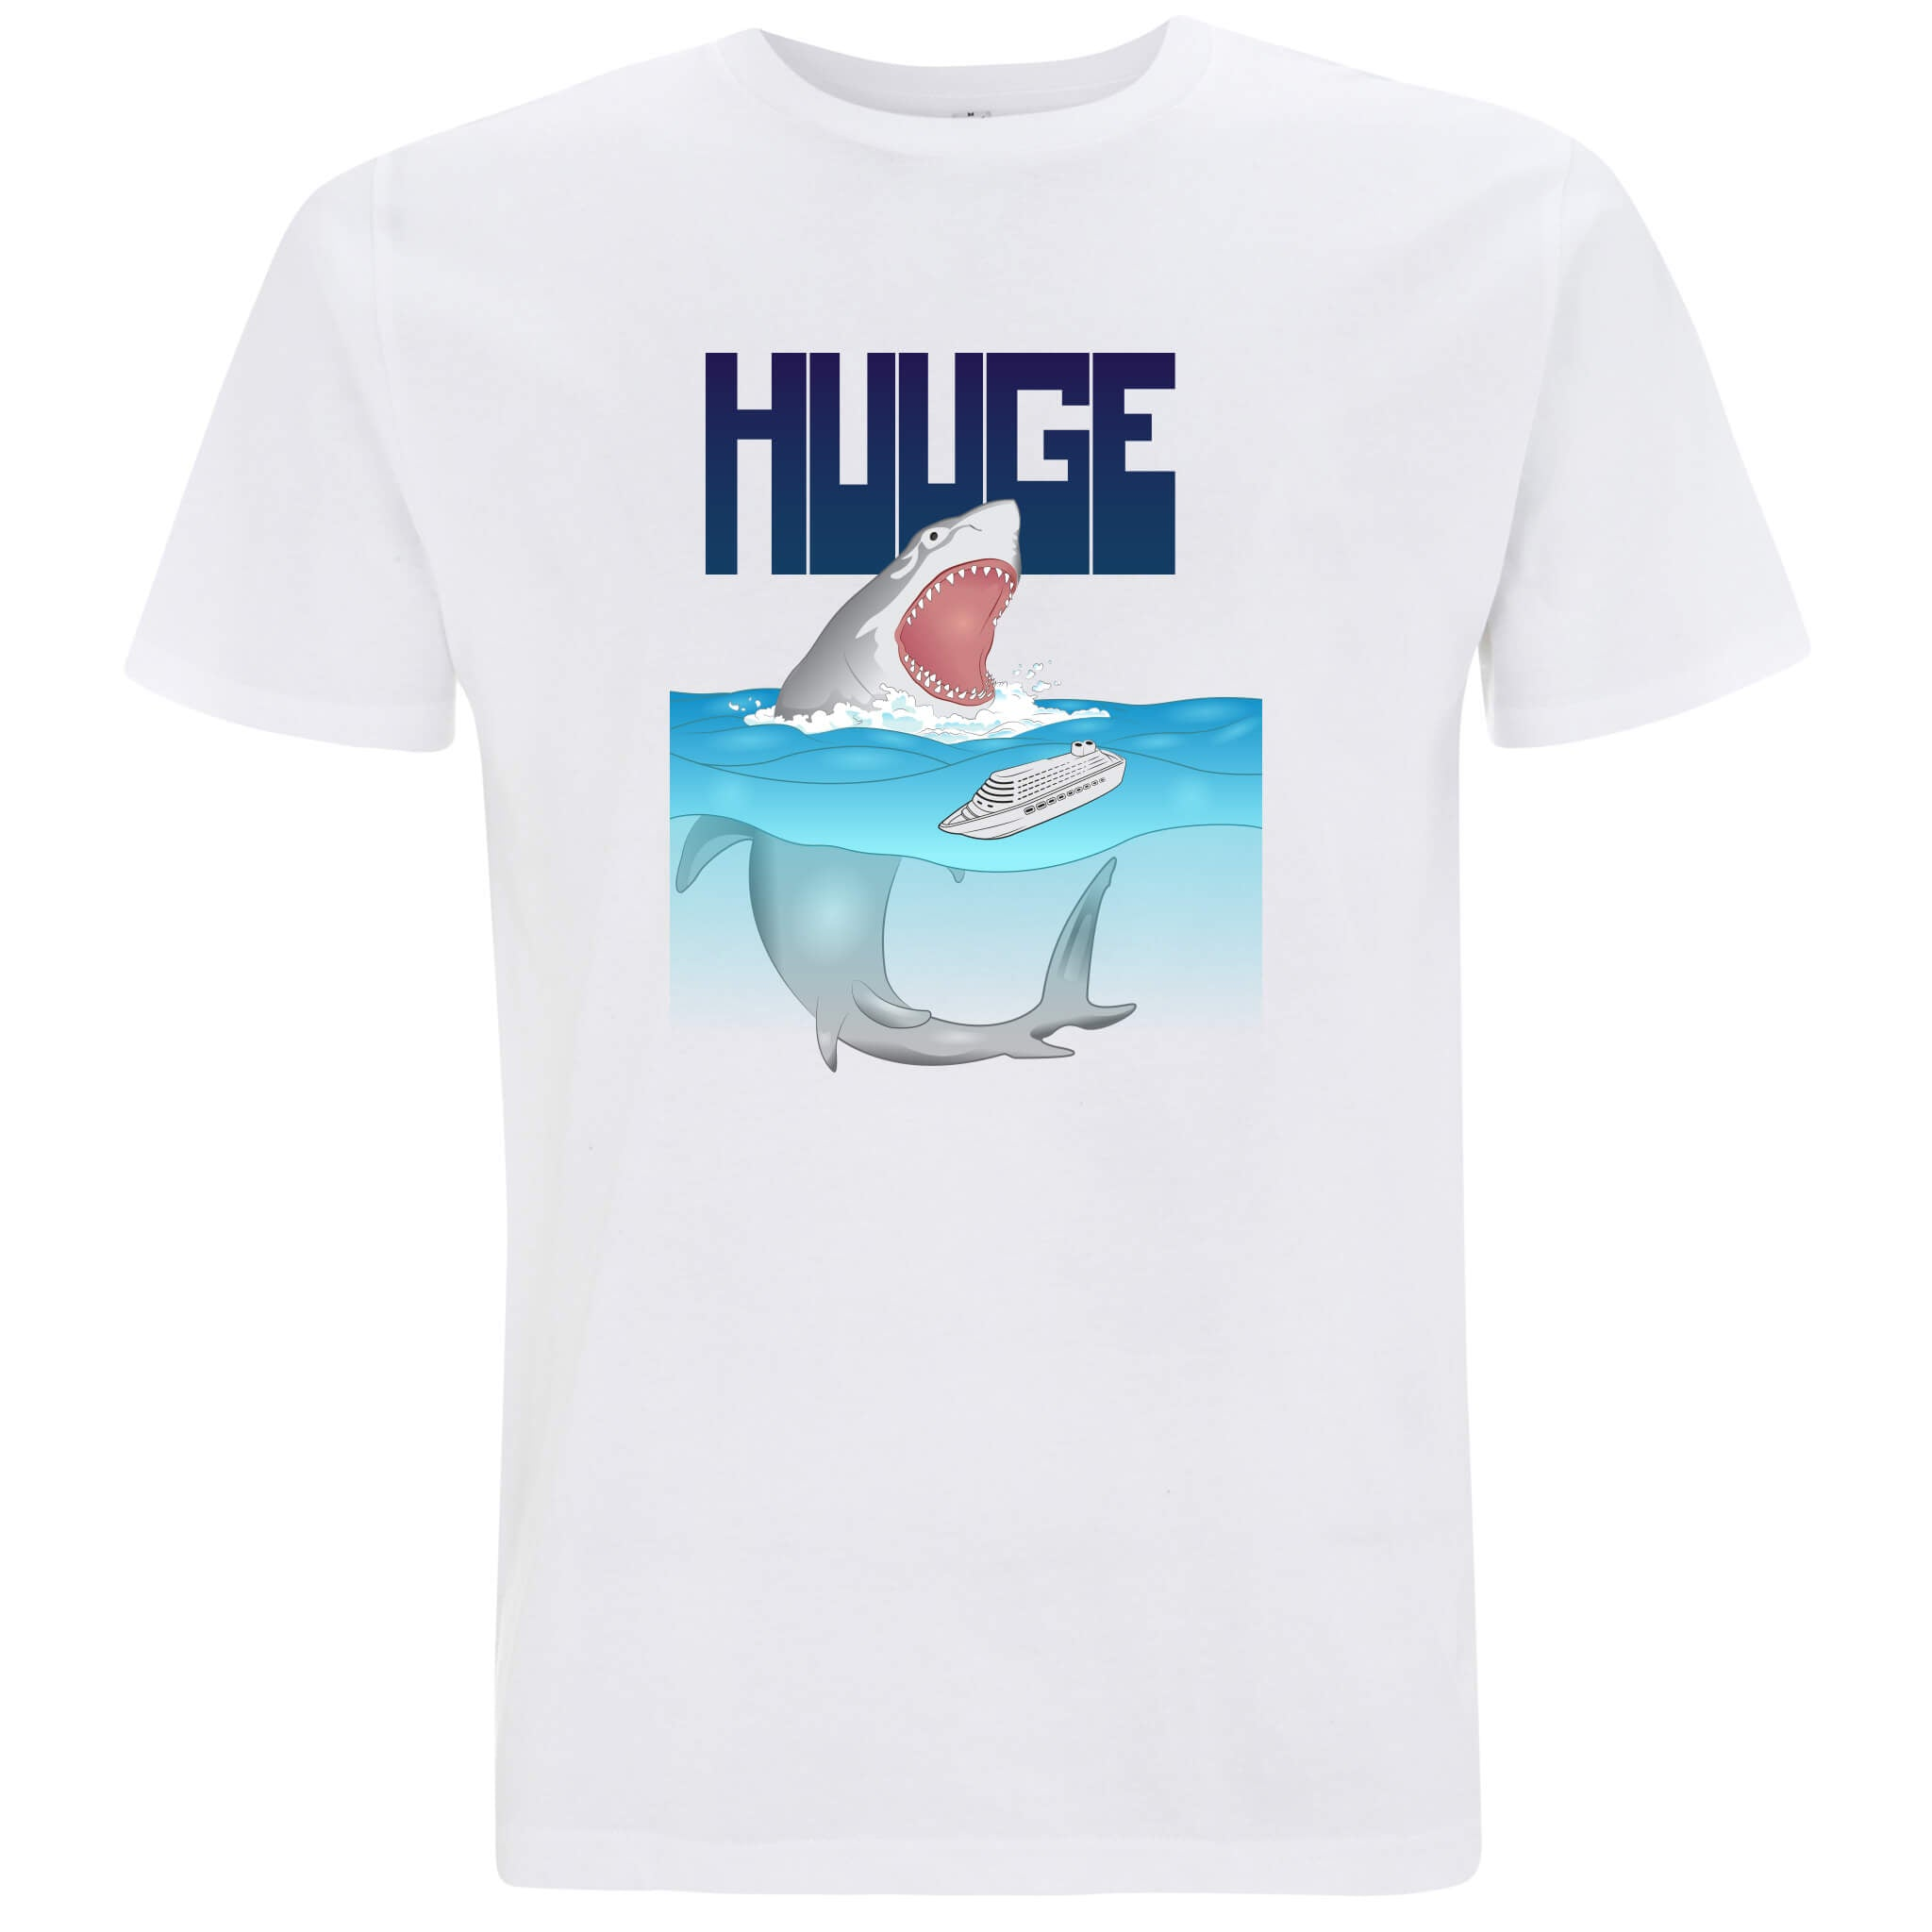 Huuge Squalo - T-shirt Uomo - T-Shirt by Fol The Brand